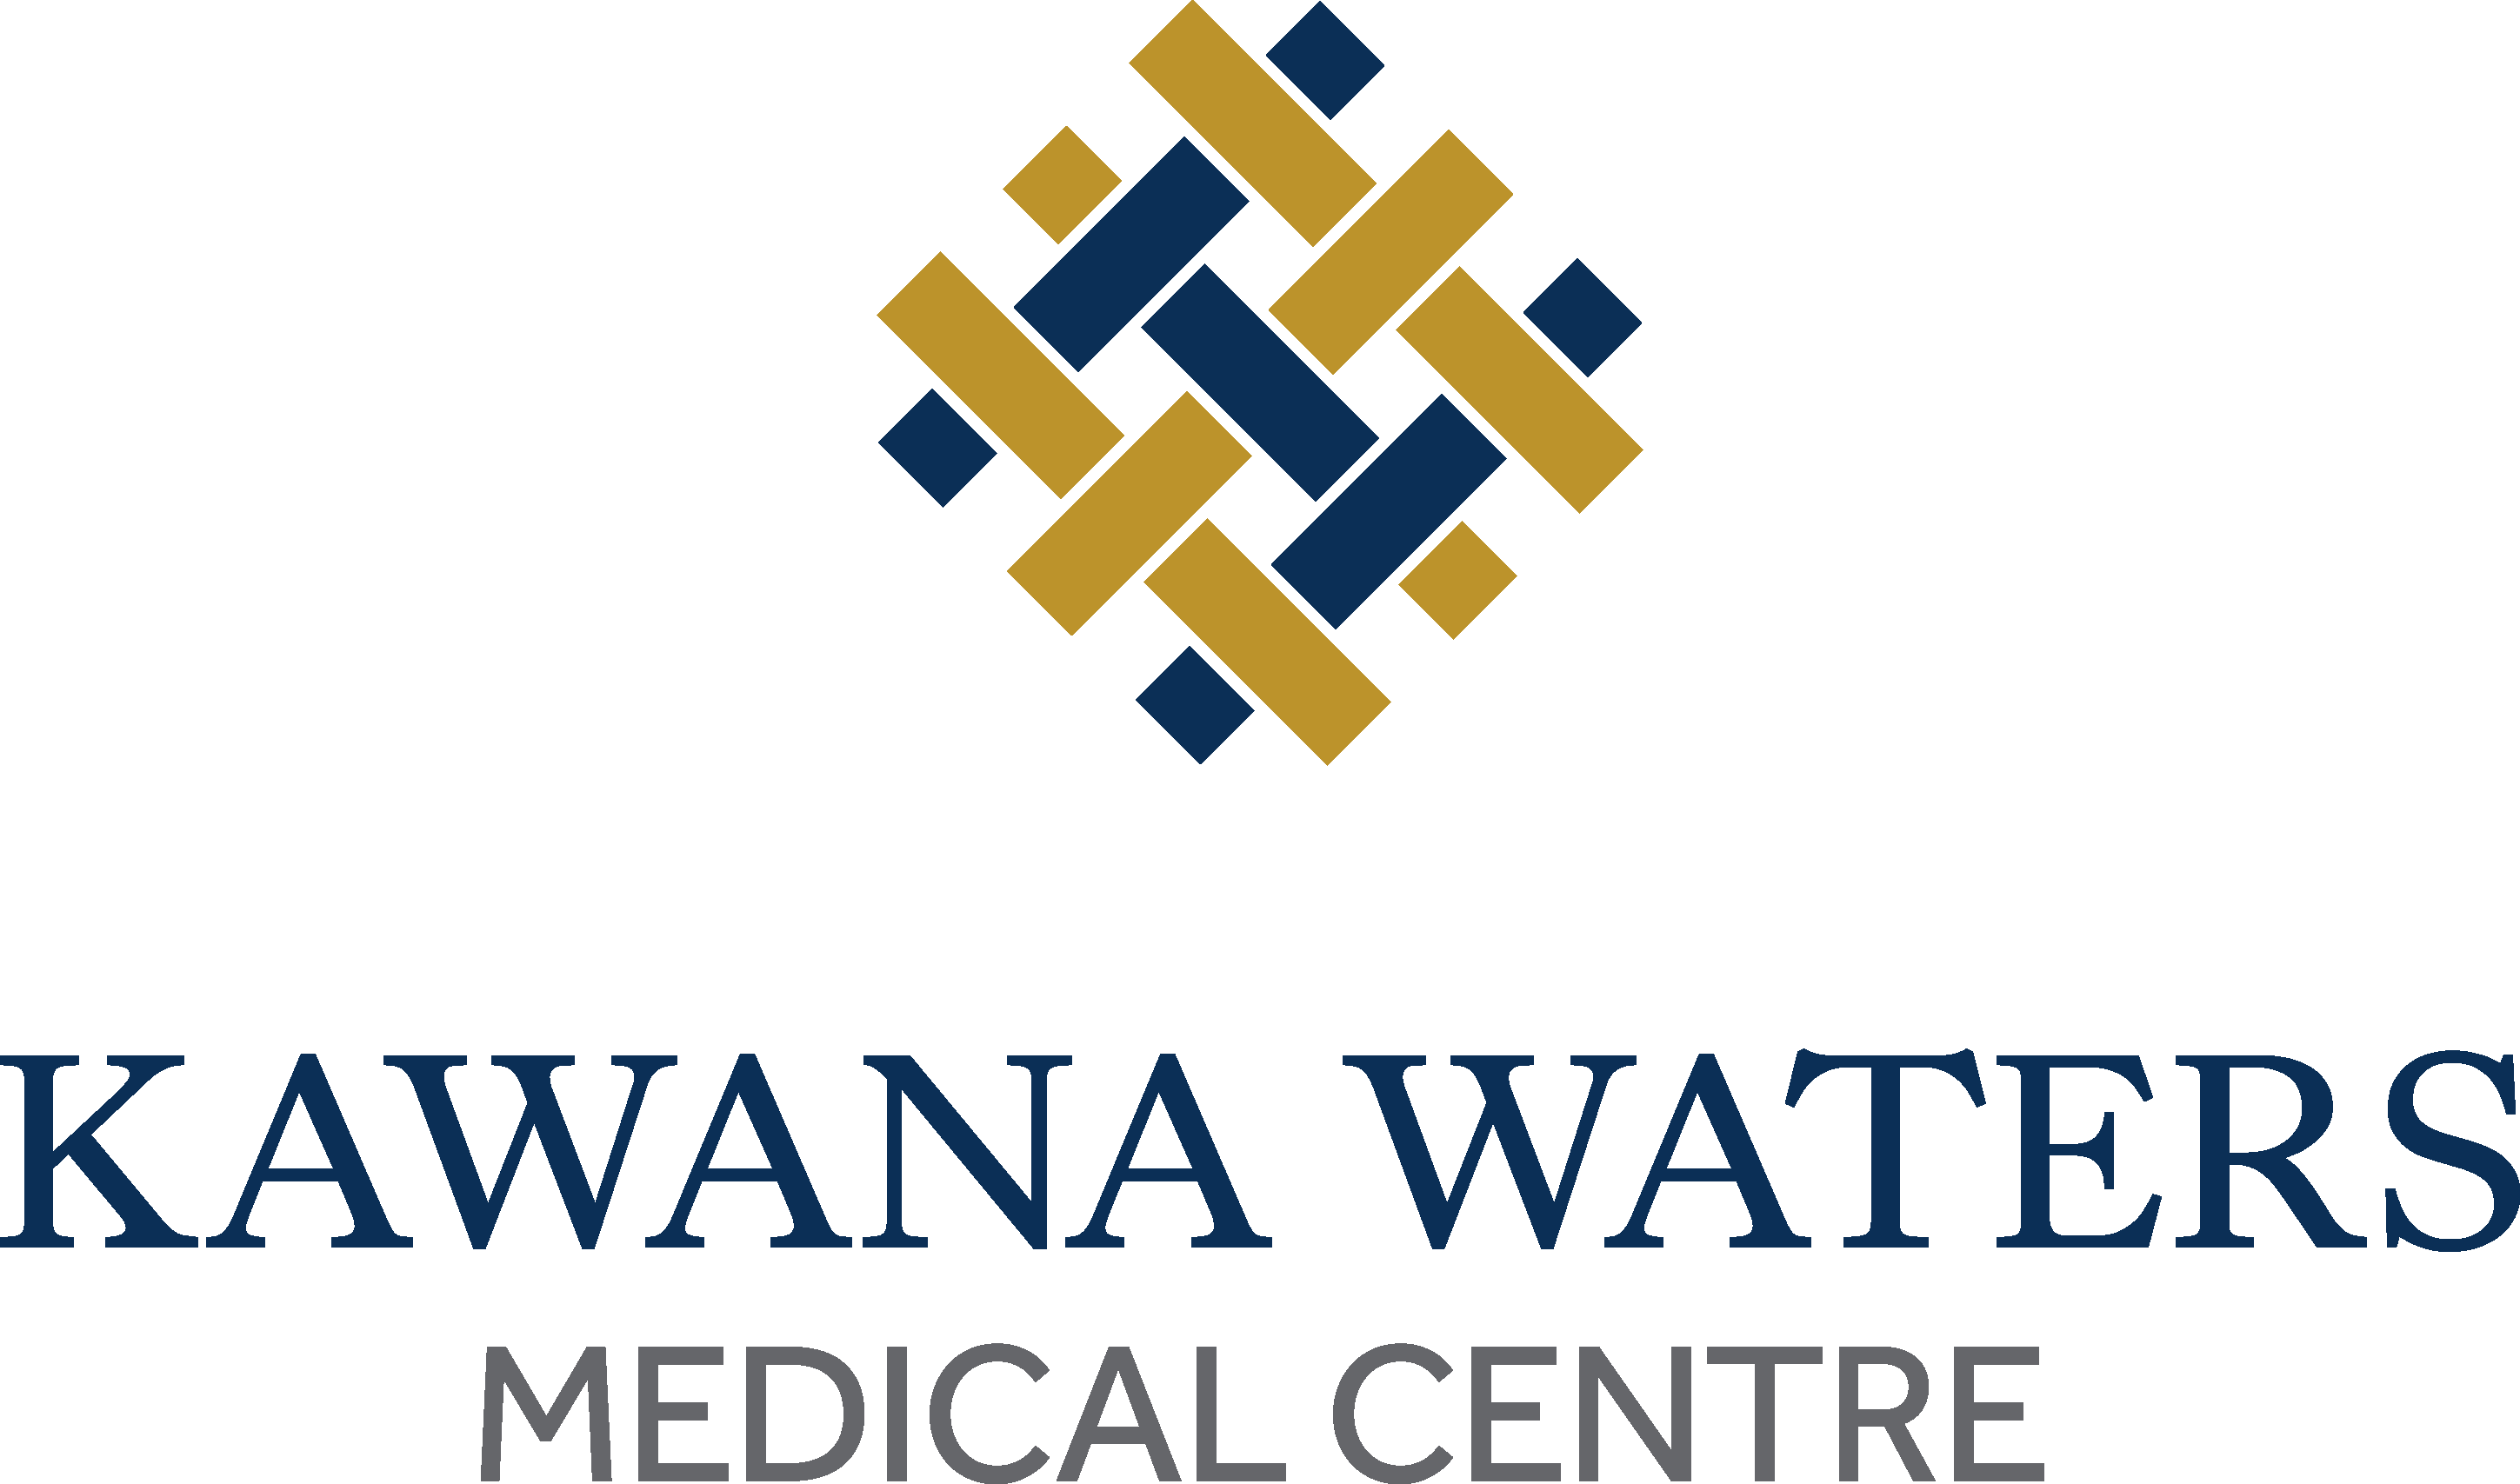 Kawana Waters Medical Centre Logo